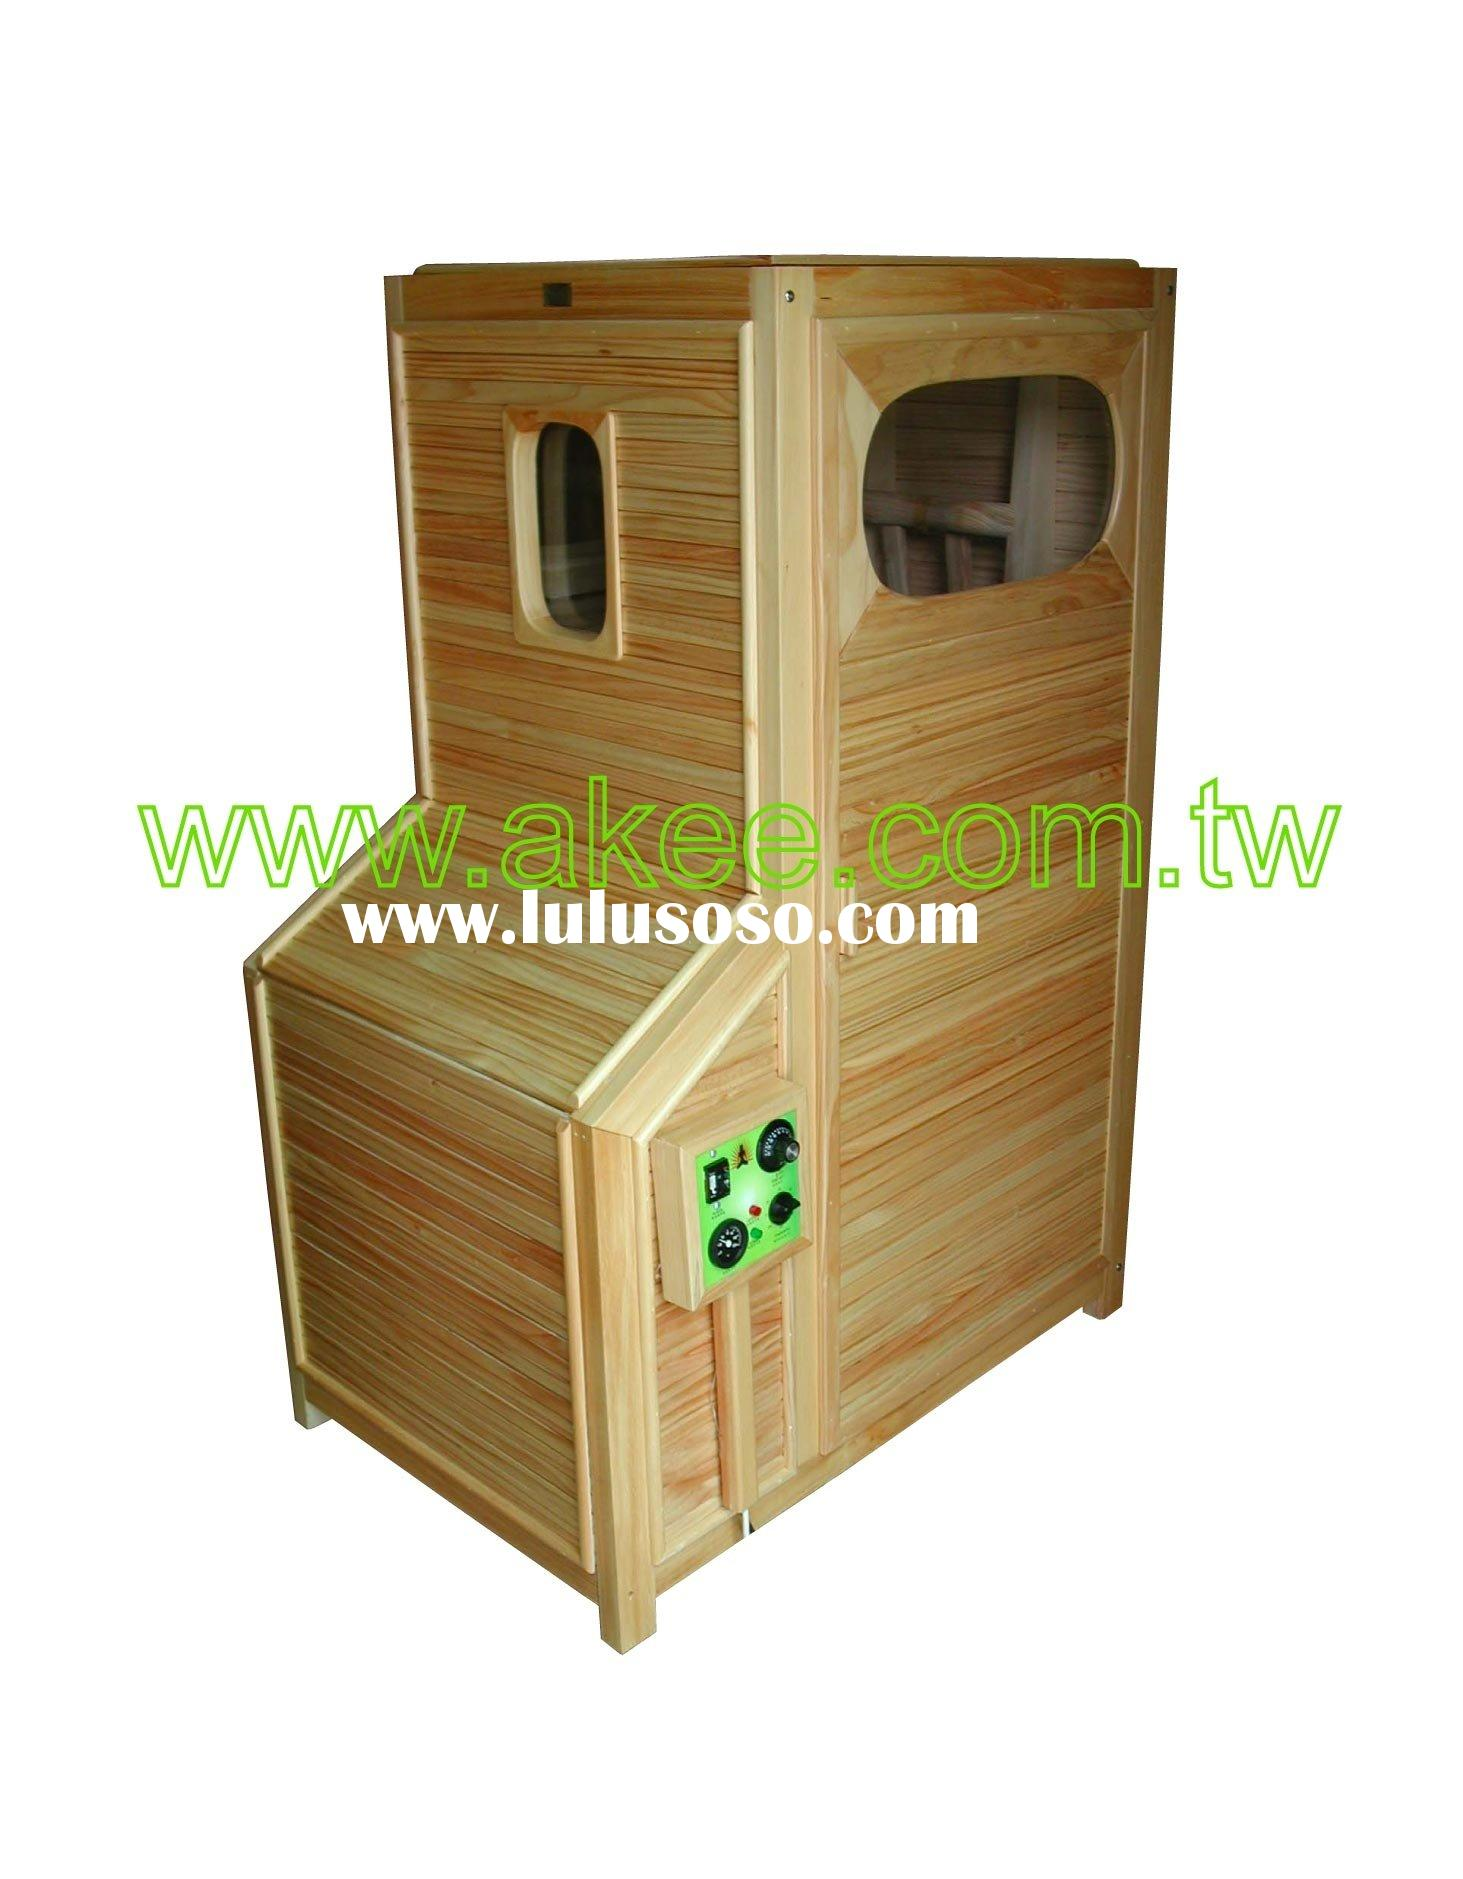 (BH-009A) Sauna Box, Steam Sauna, Steam Cabinet, Sauna Room, Sauna Cabin, Heater Box